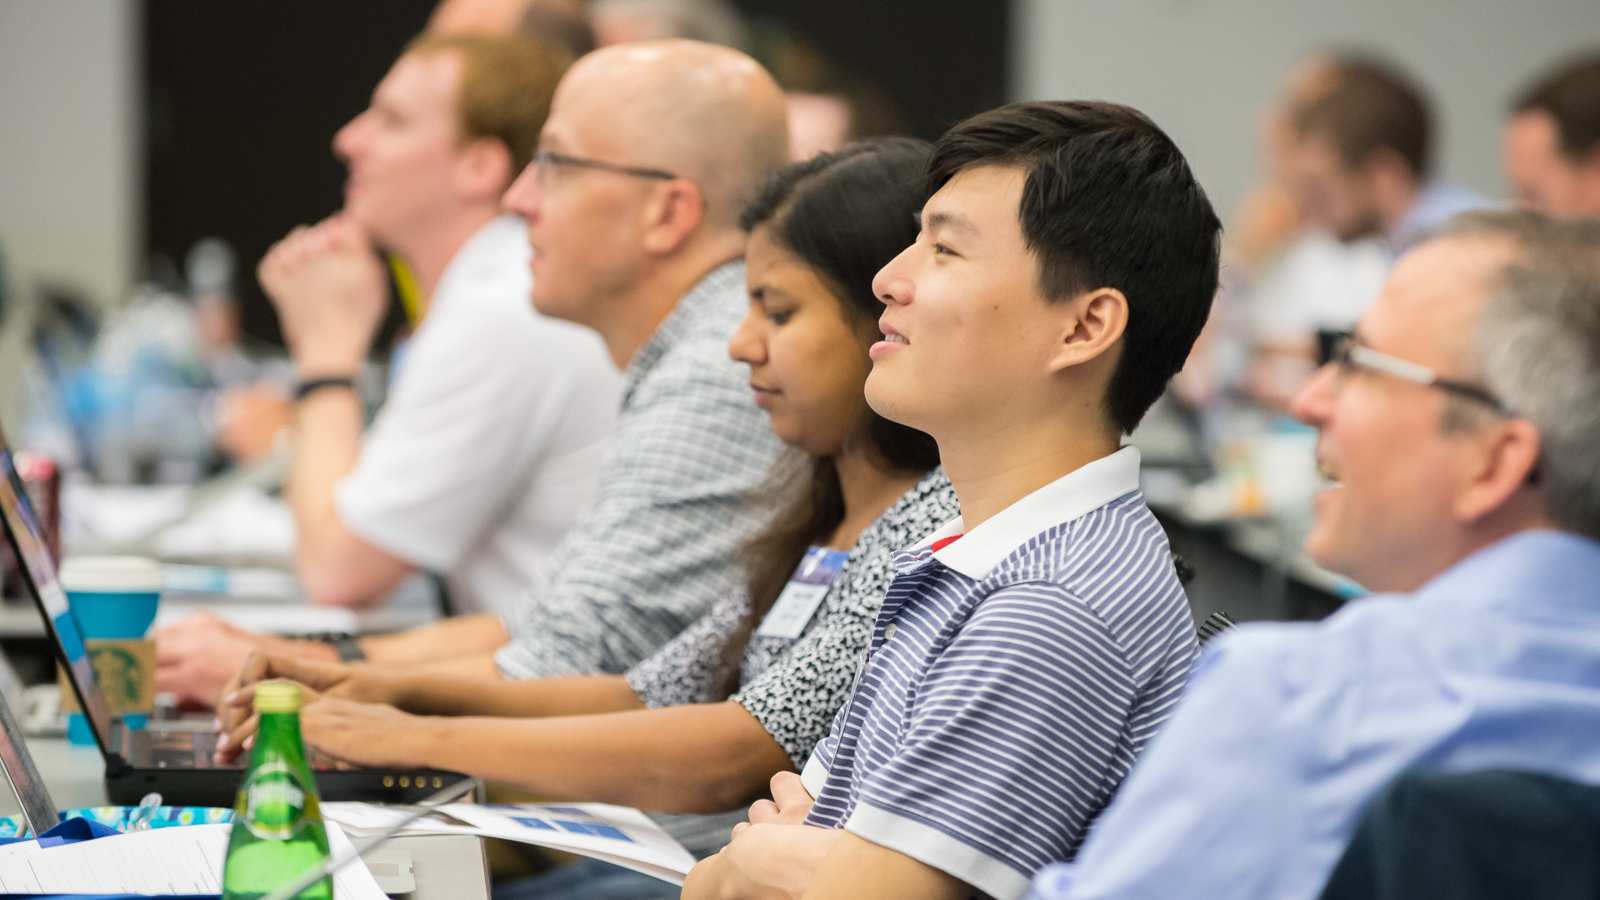 Participants at the EuroMPI/USA 2017 conference, held at Argonne.